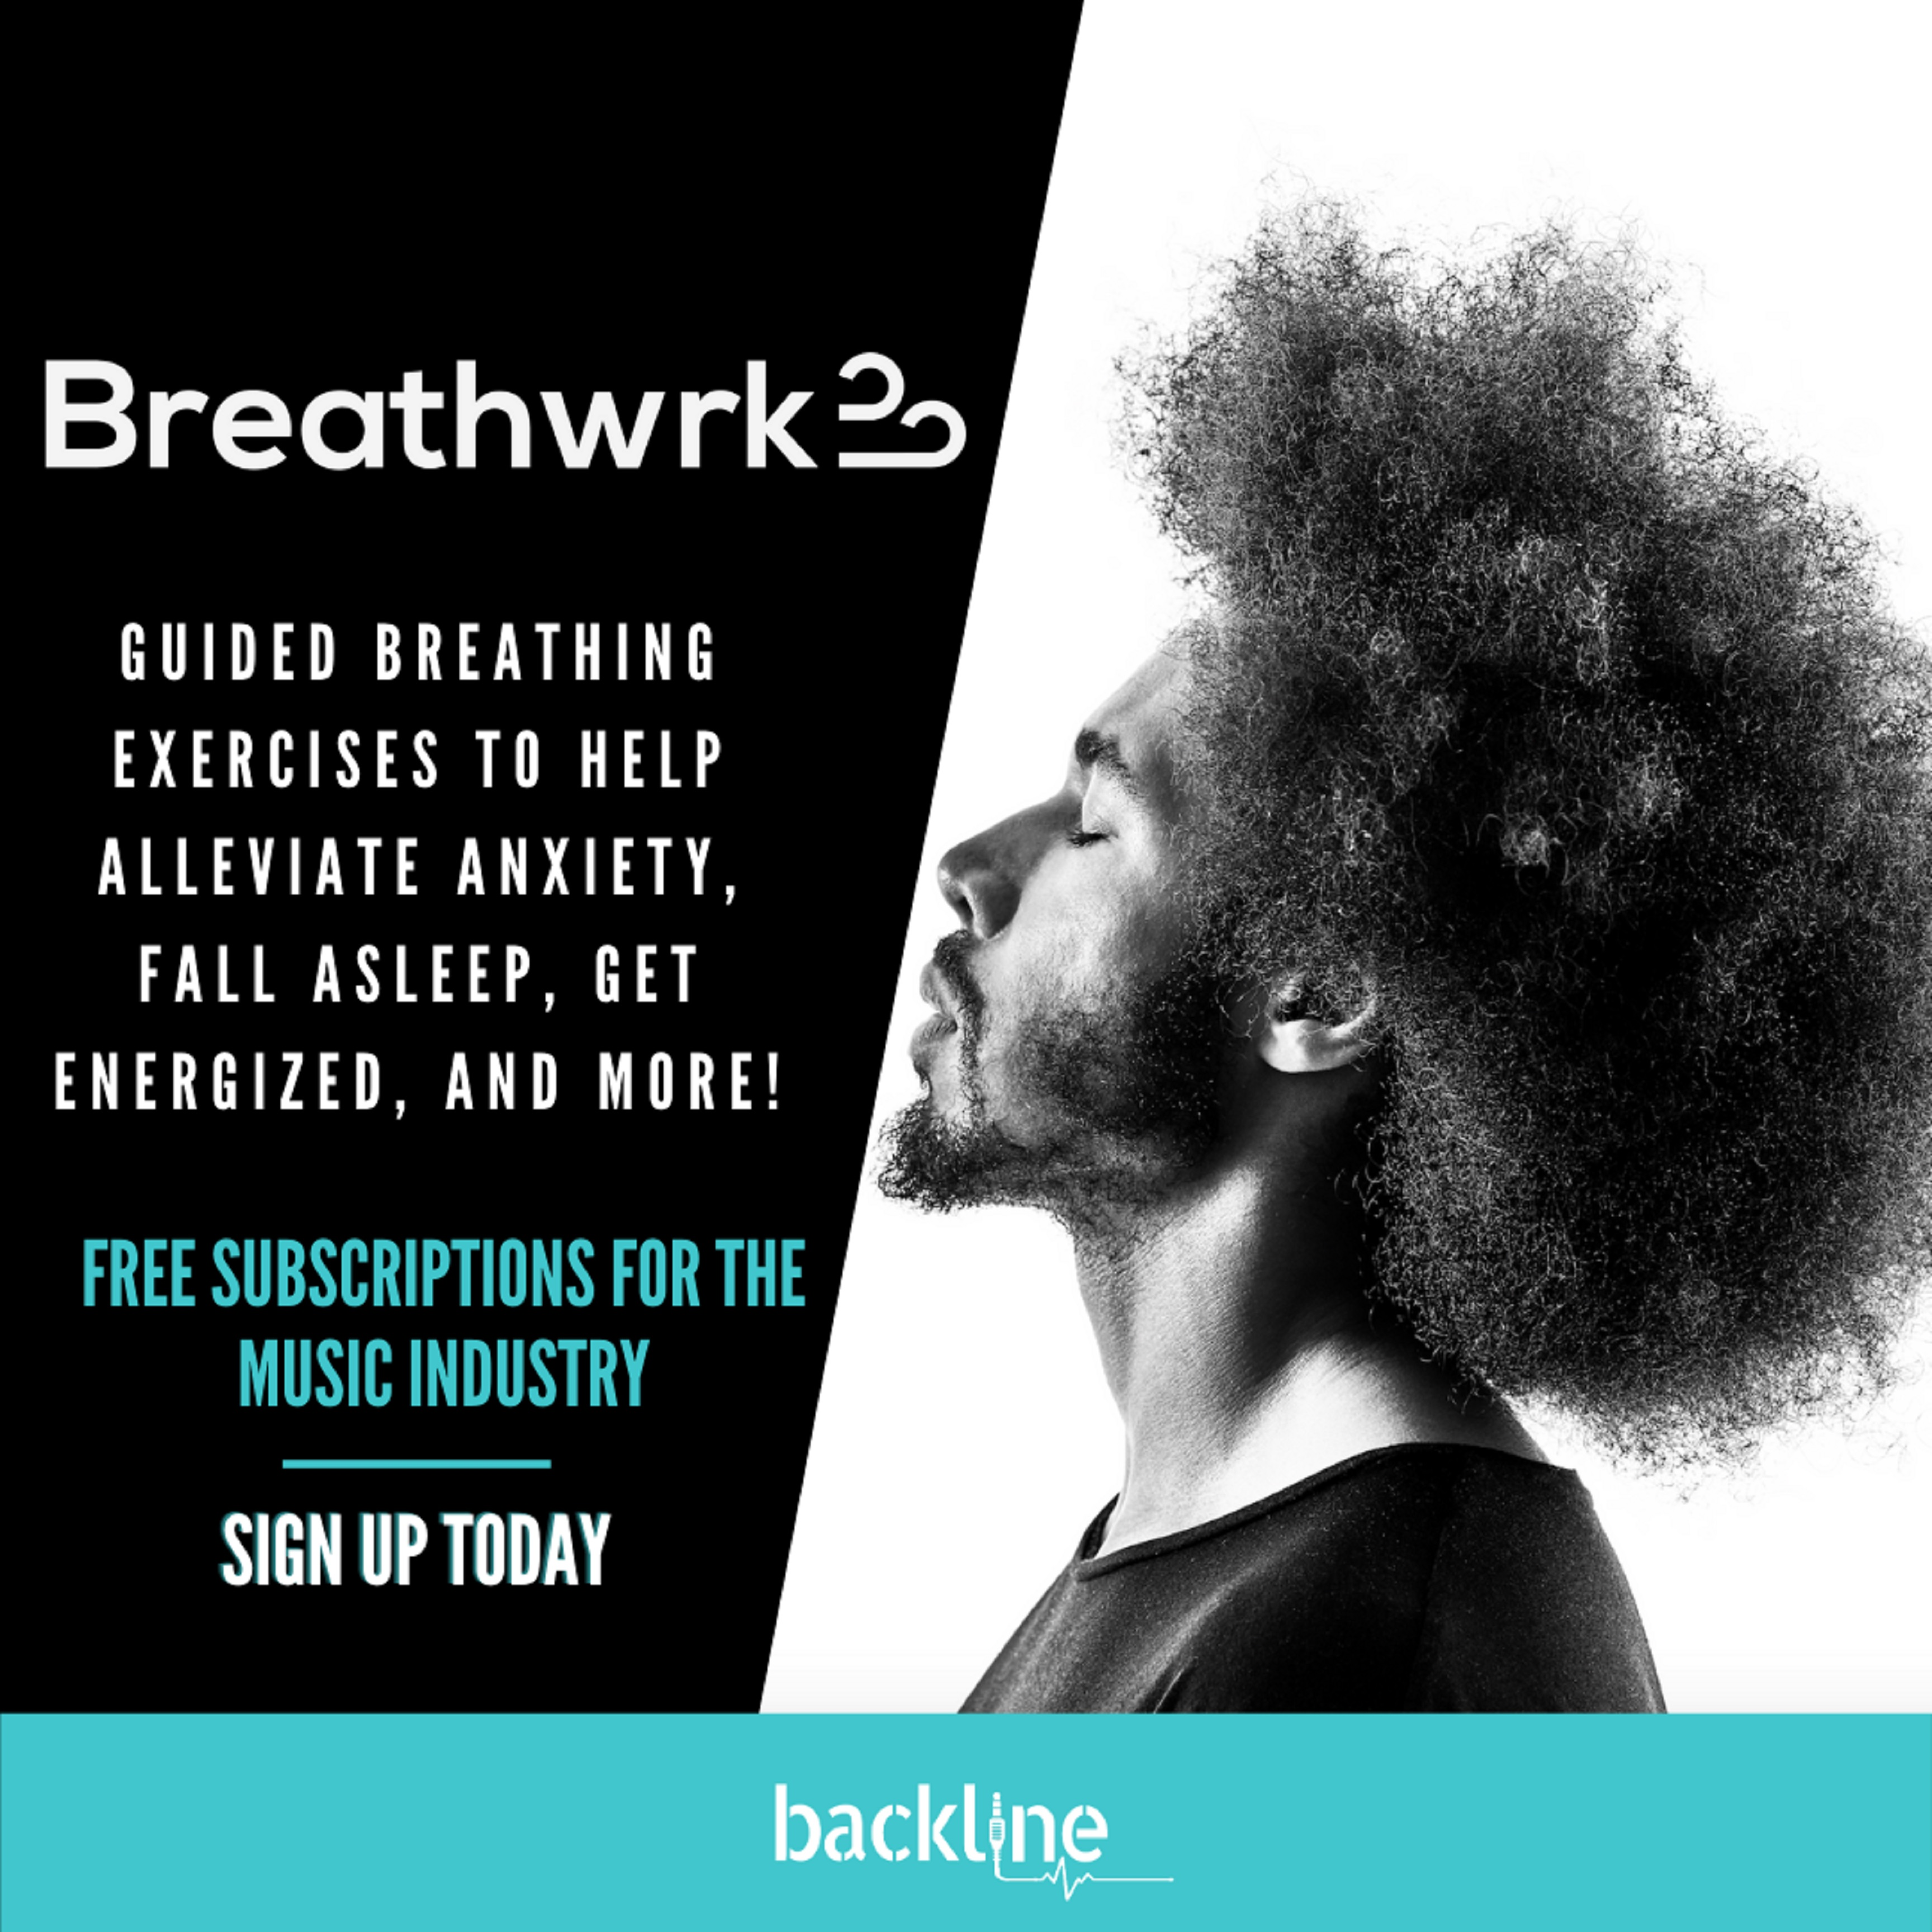 Backline provides free yoga and meditation subscriptions for the music industry